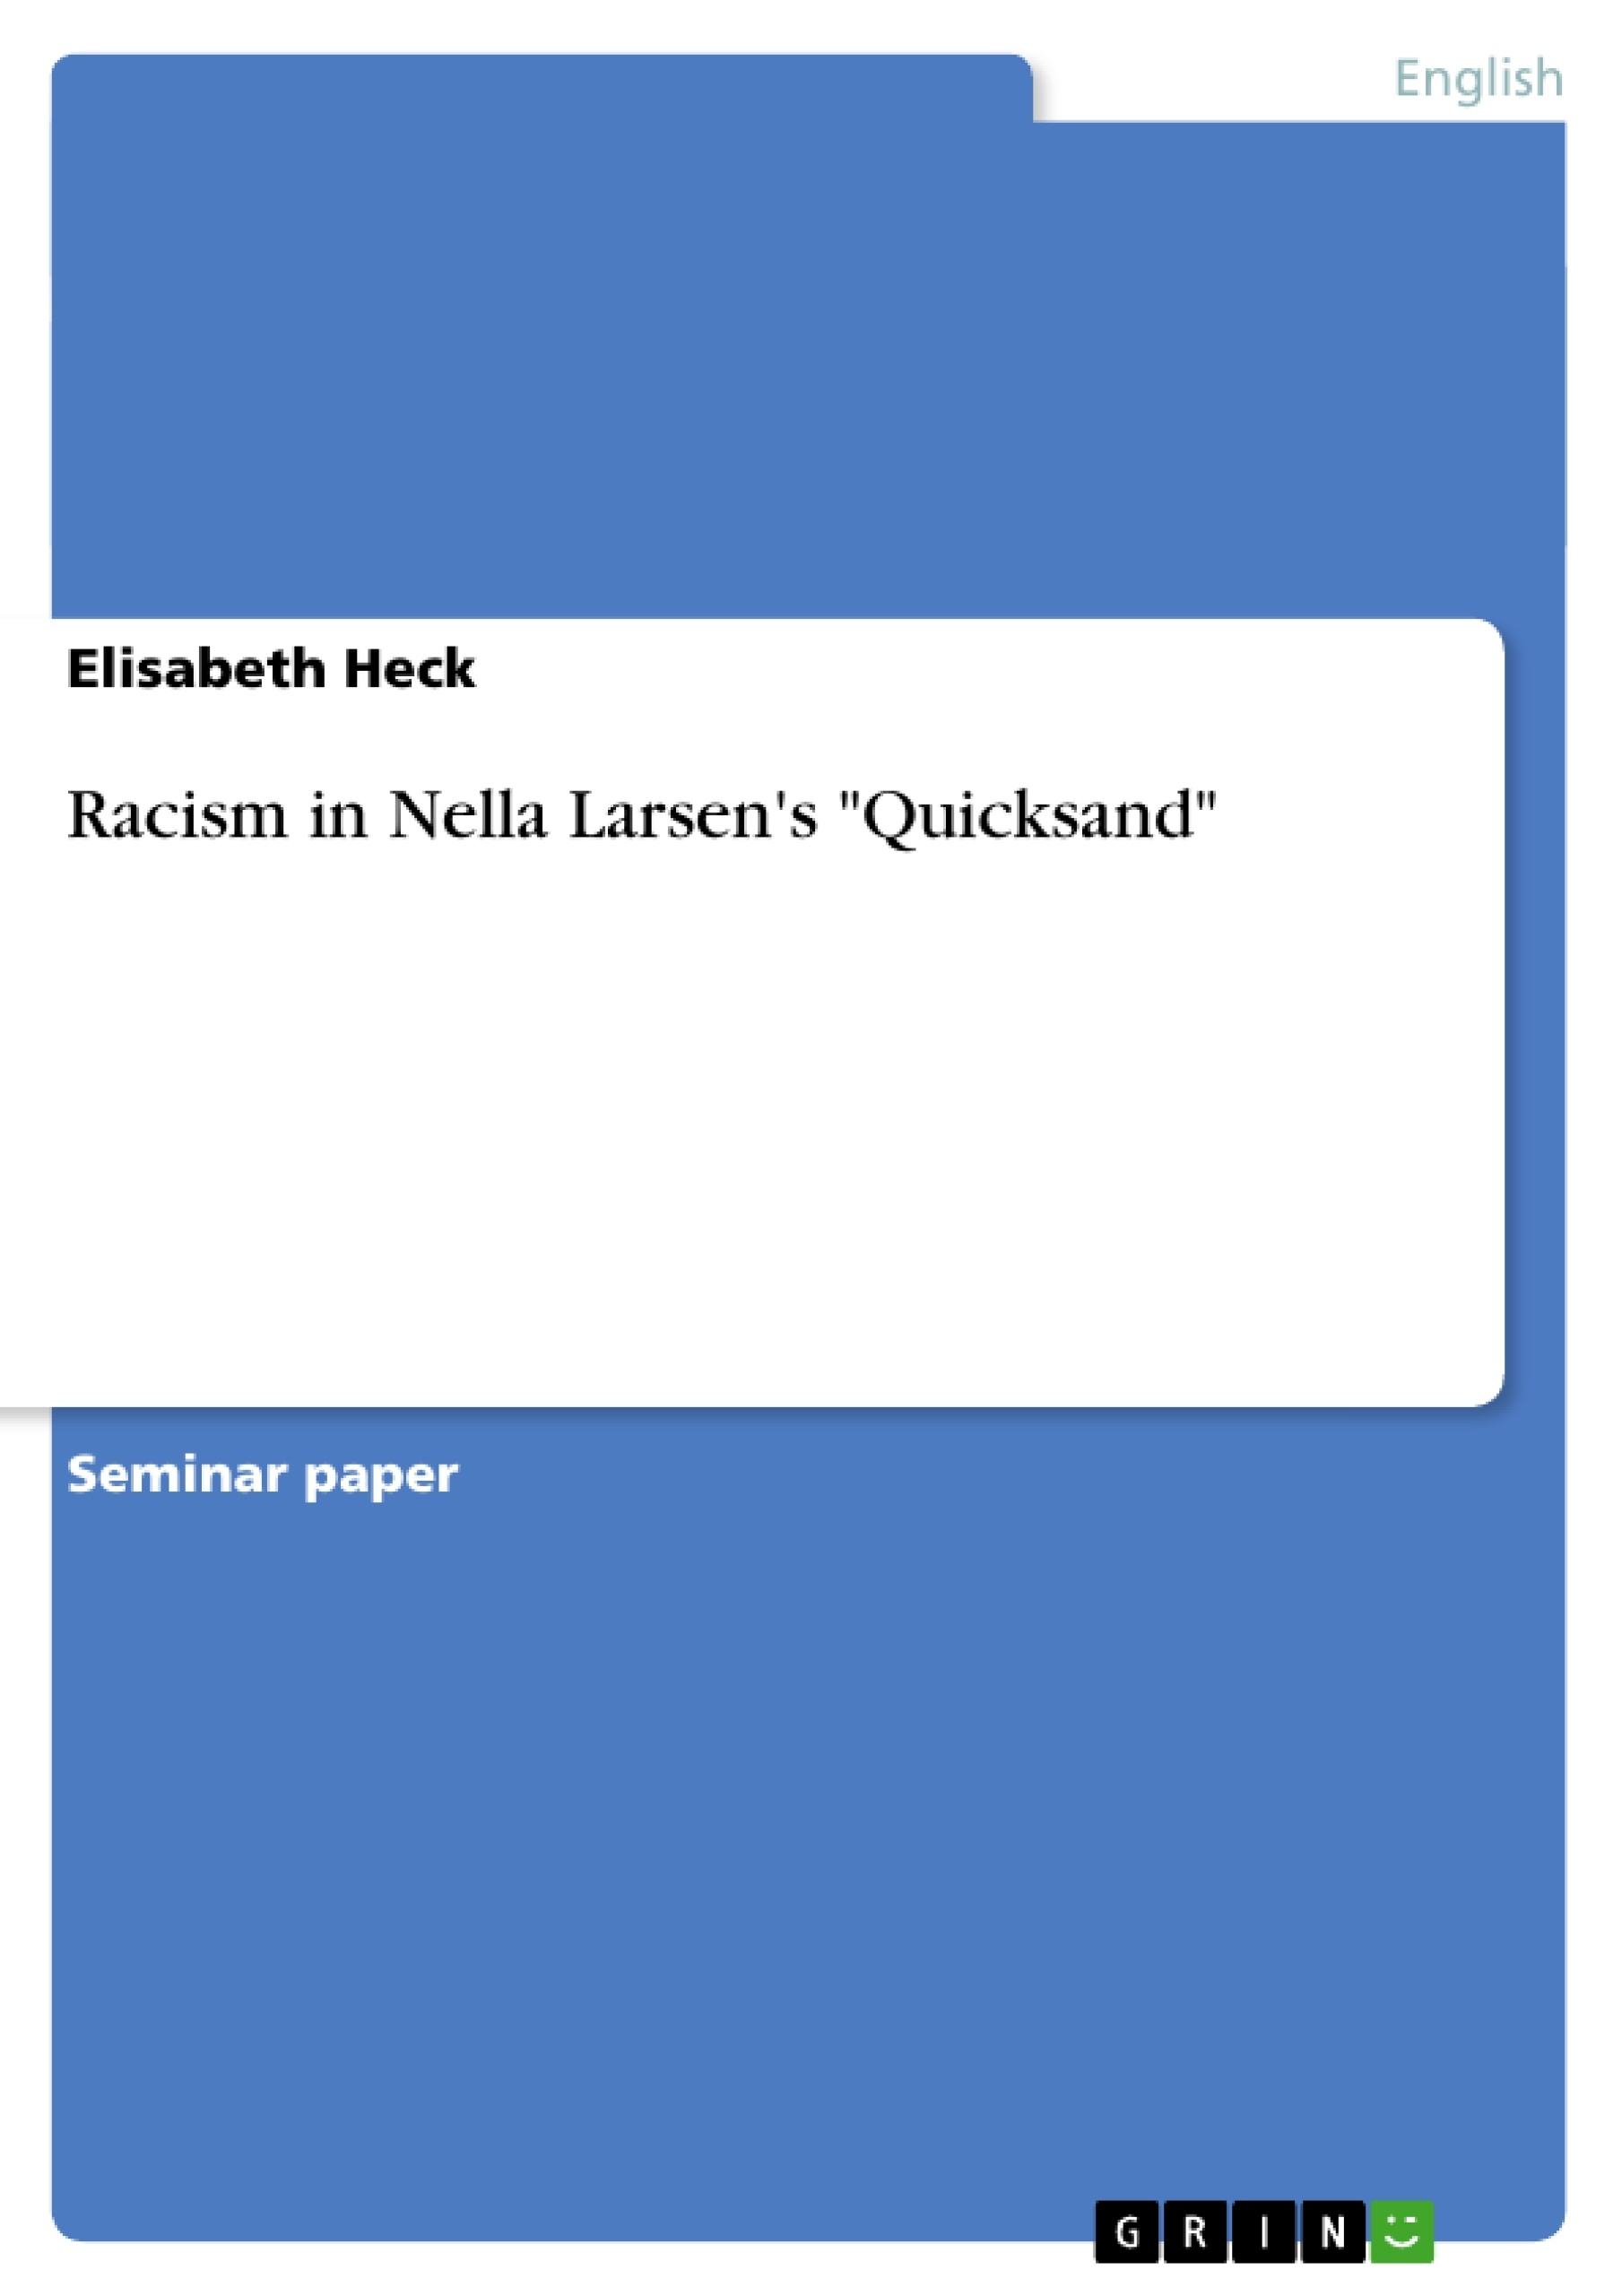 021 181607 0 Racism Essay Topics Excellent Questions Othello Paper Full